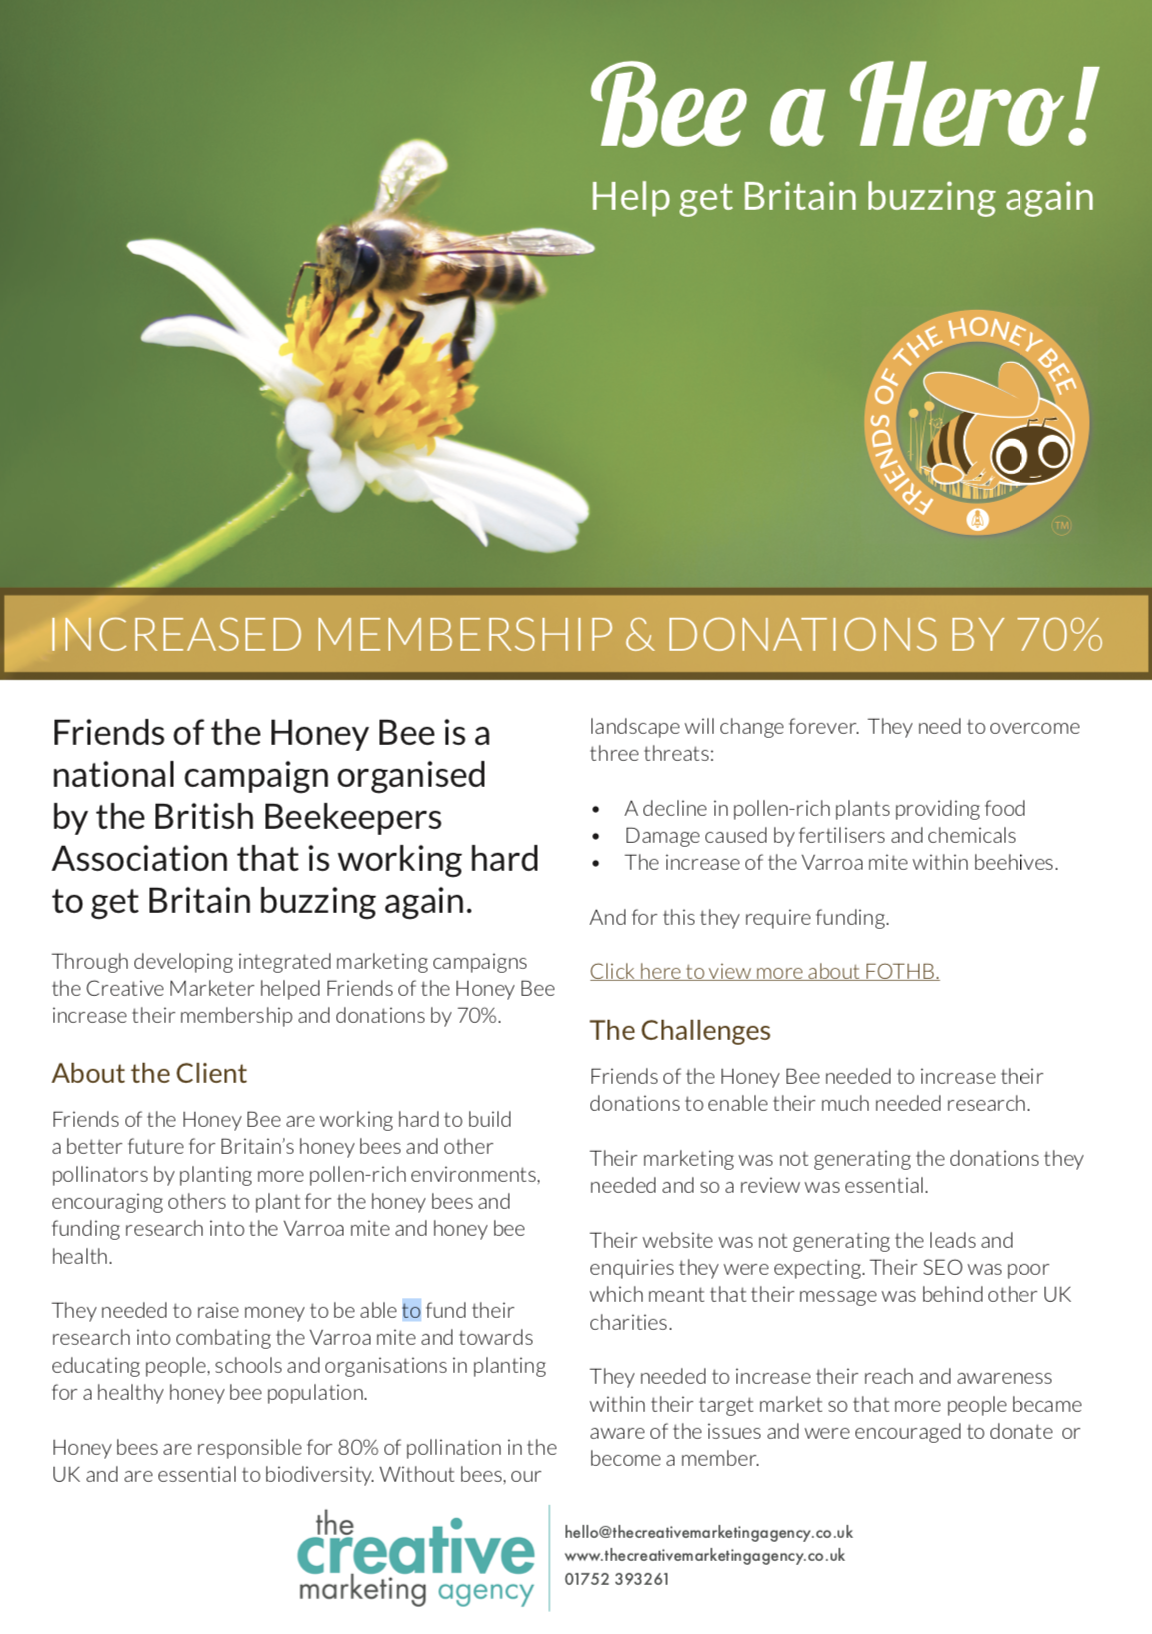 Friends of the Honey Bee marketing